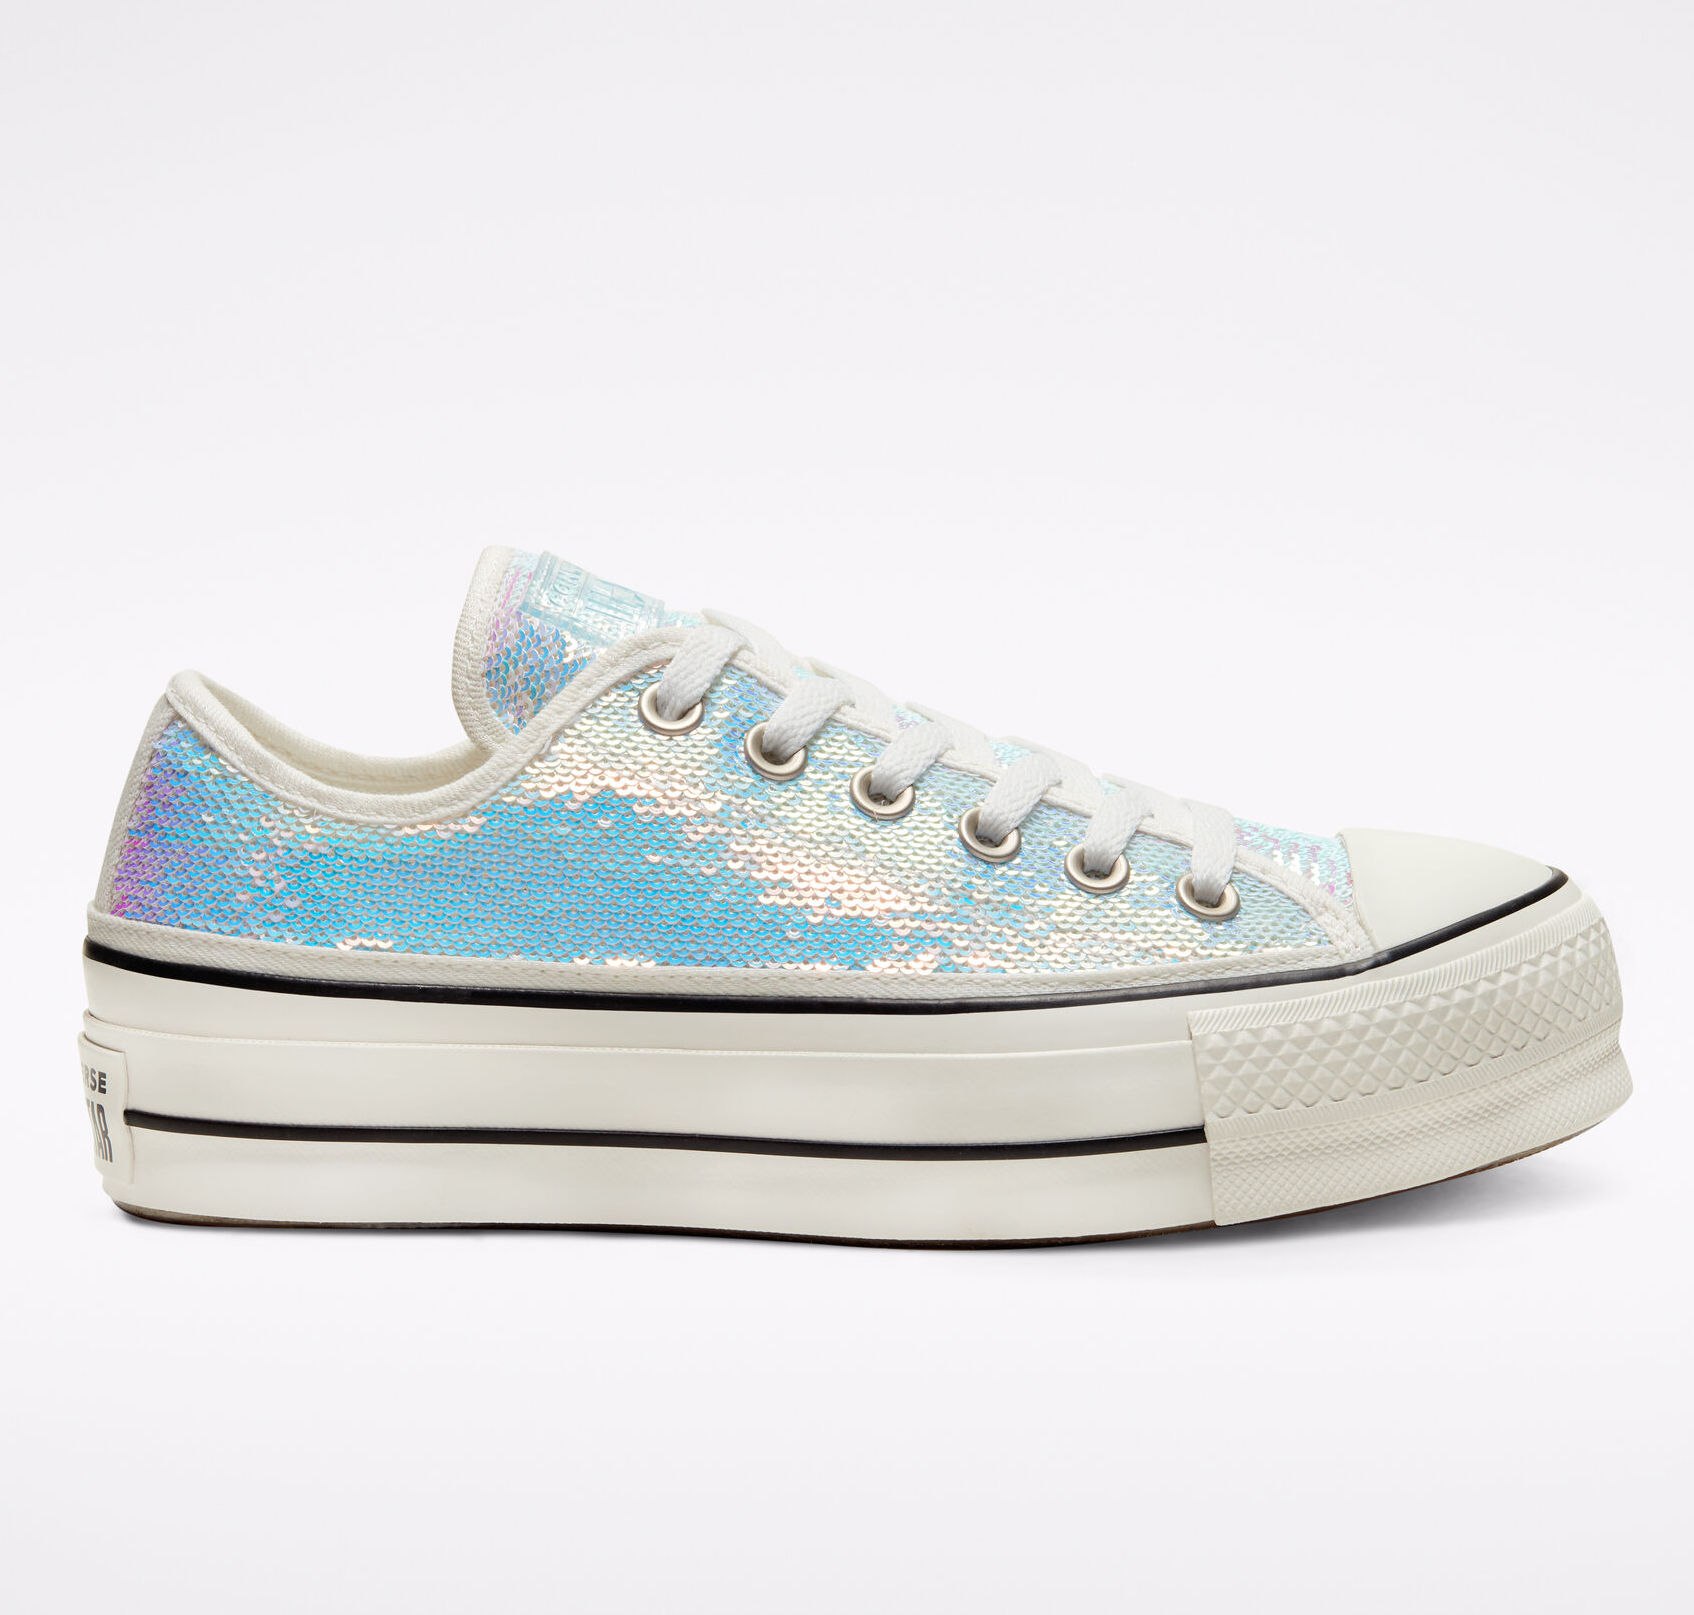 sequined platform Converse sneakers for women